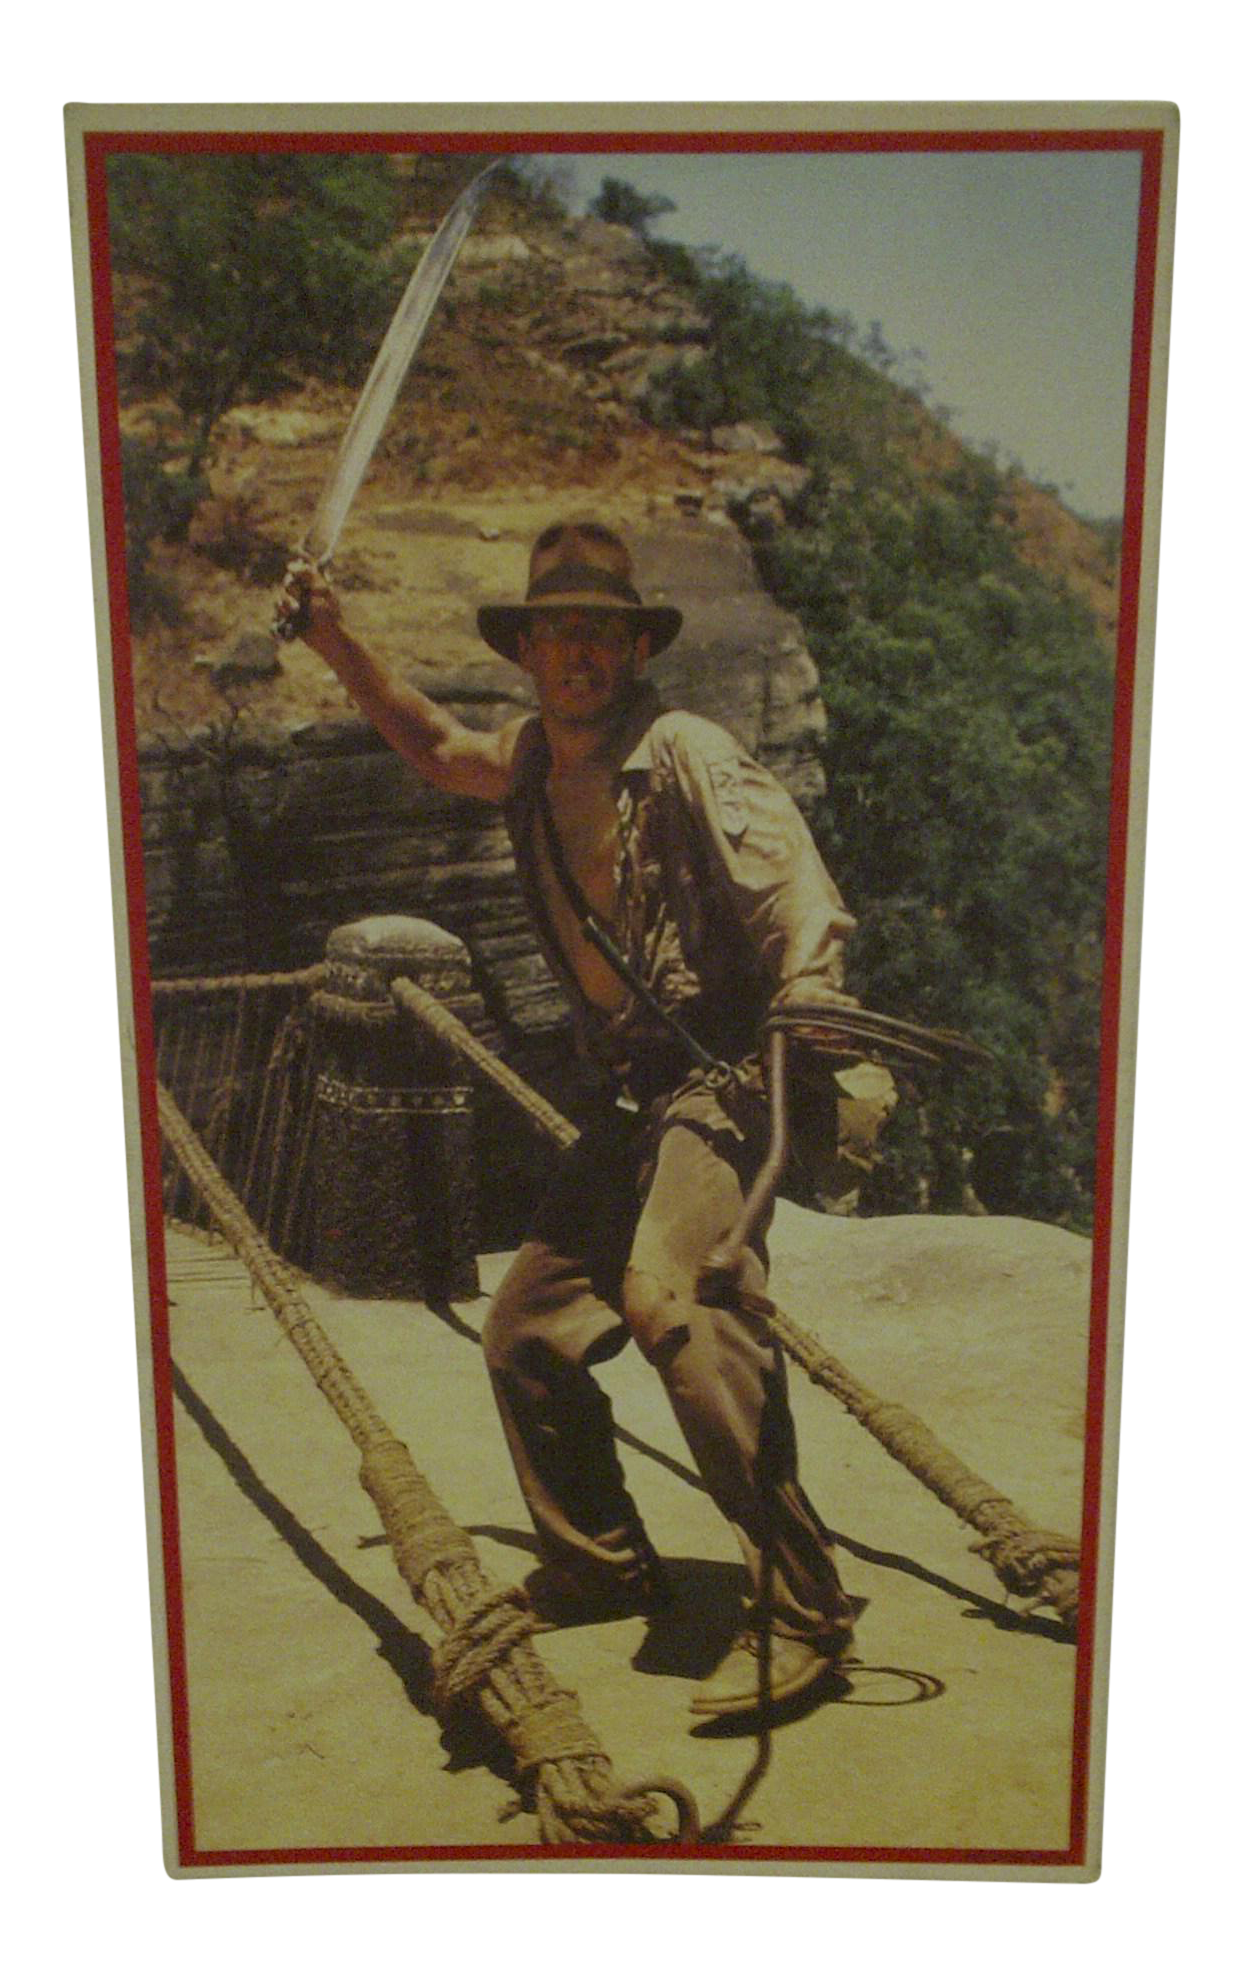 Vintage Un Cut Sheet of Gum Card Stickers Indiana Jones  : vintage un cut sheet of gum card stickers indiana jones and the temple of doom 4806 from www.chairish.com size 1244 x 1984 png 2622kB